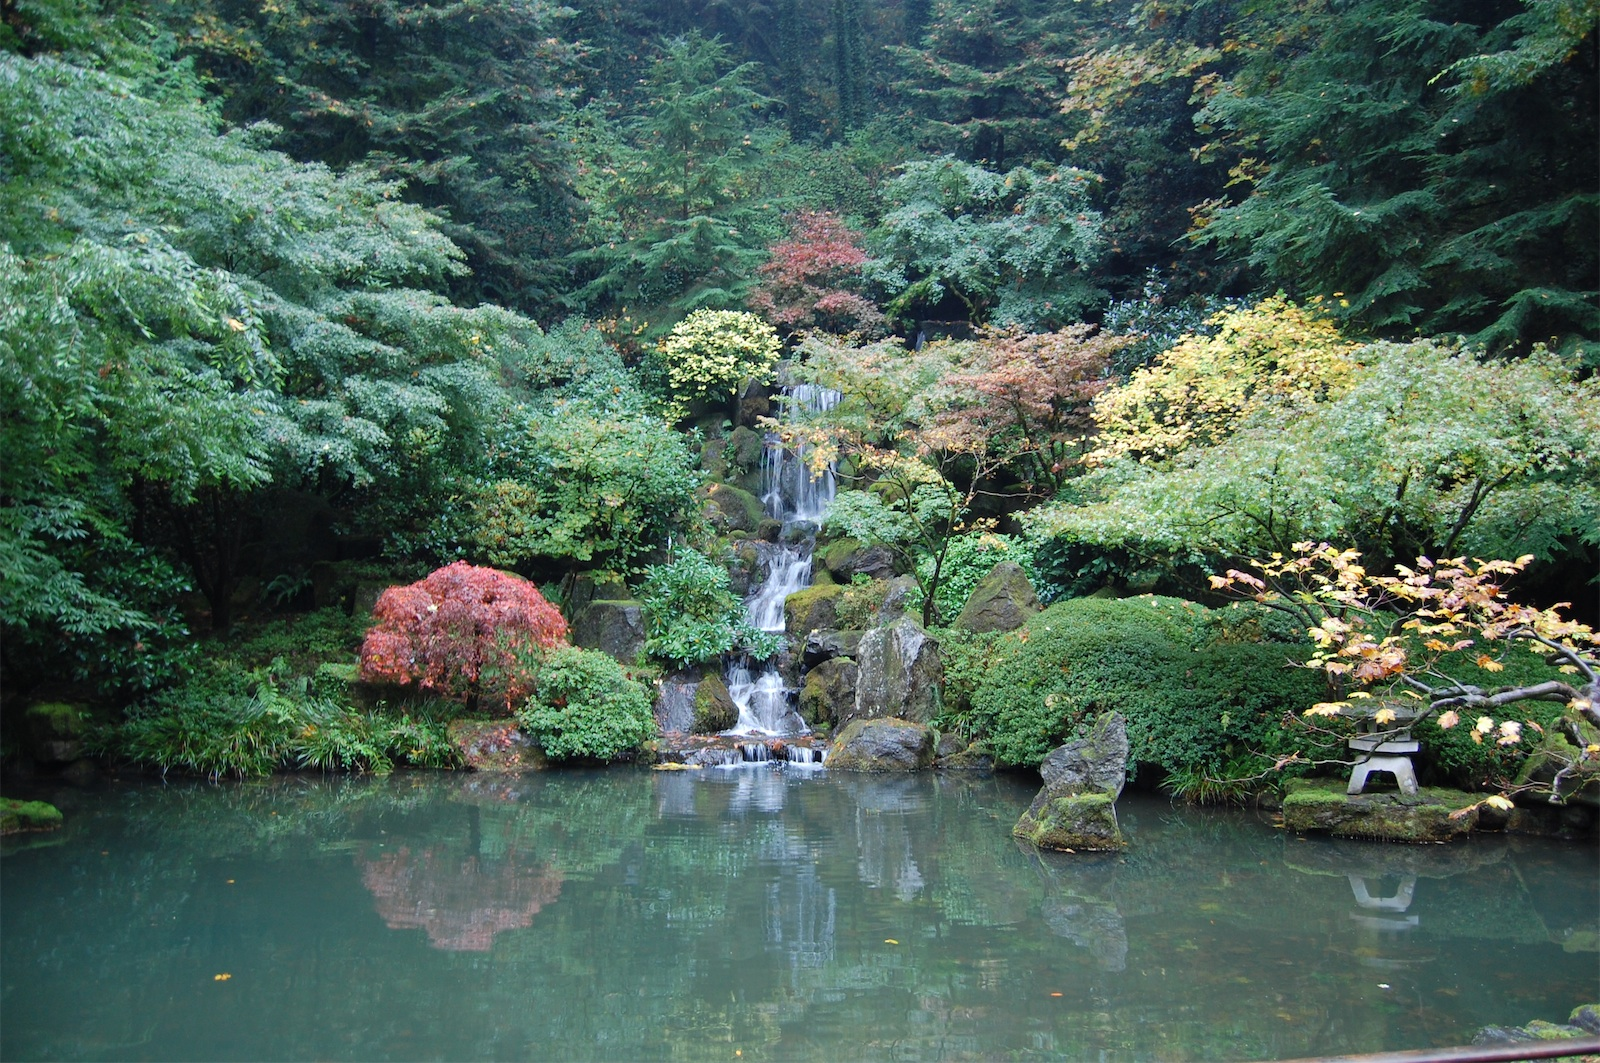 Portland Japanese Garden: A Place Of Serenity And Beauty